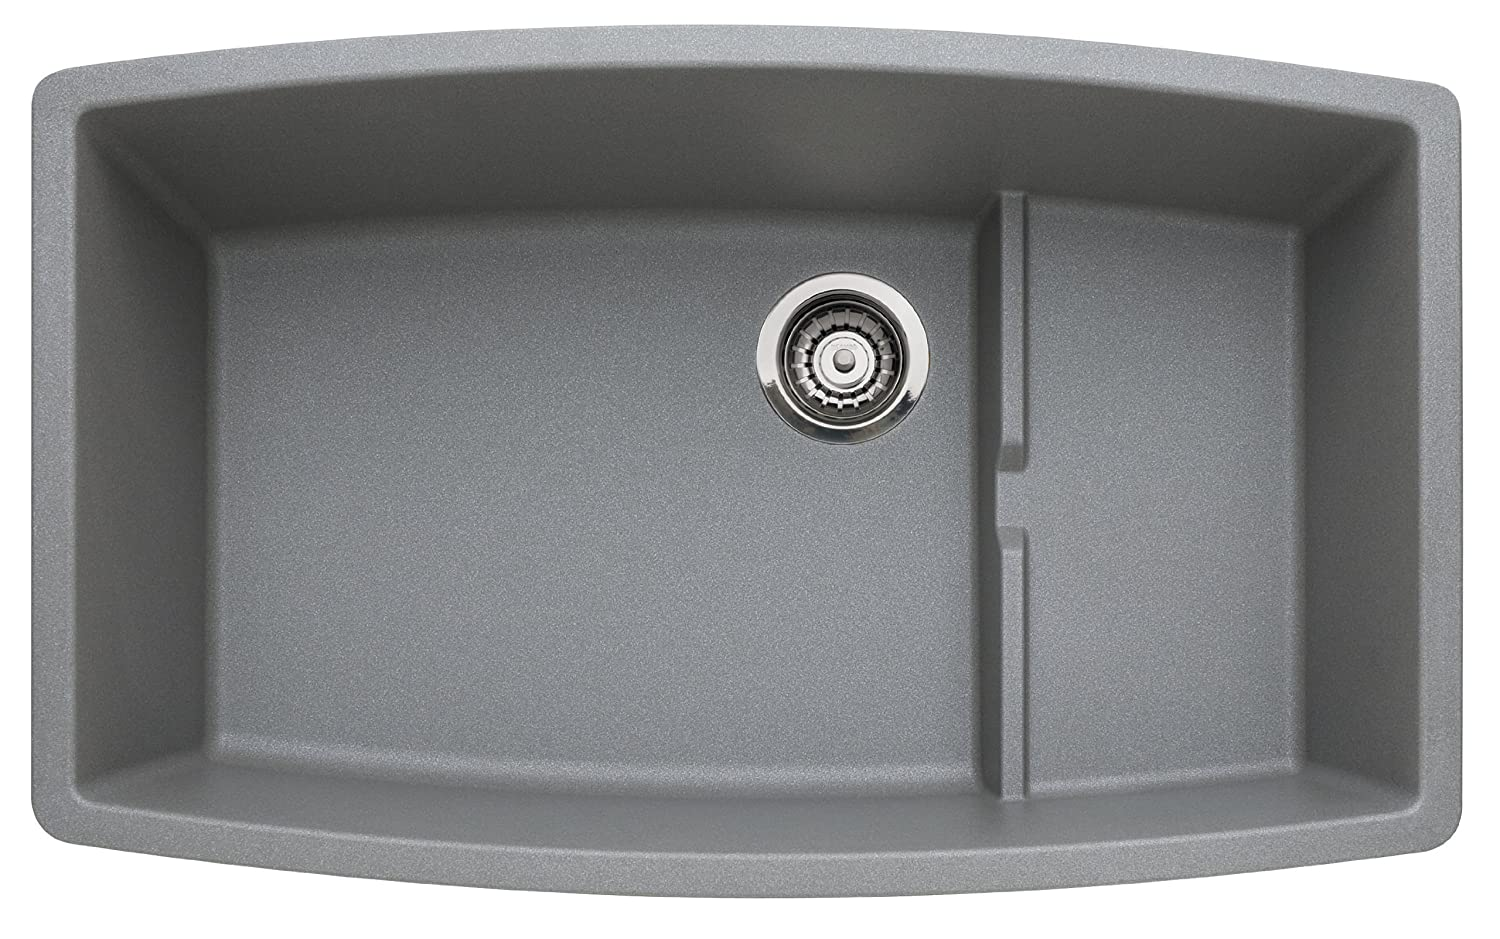 Granite composite kitchen sinks pros cons - Blanco 440067